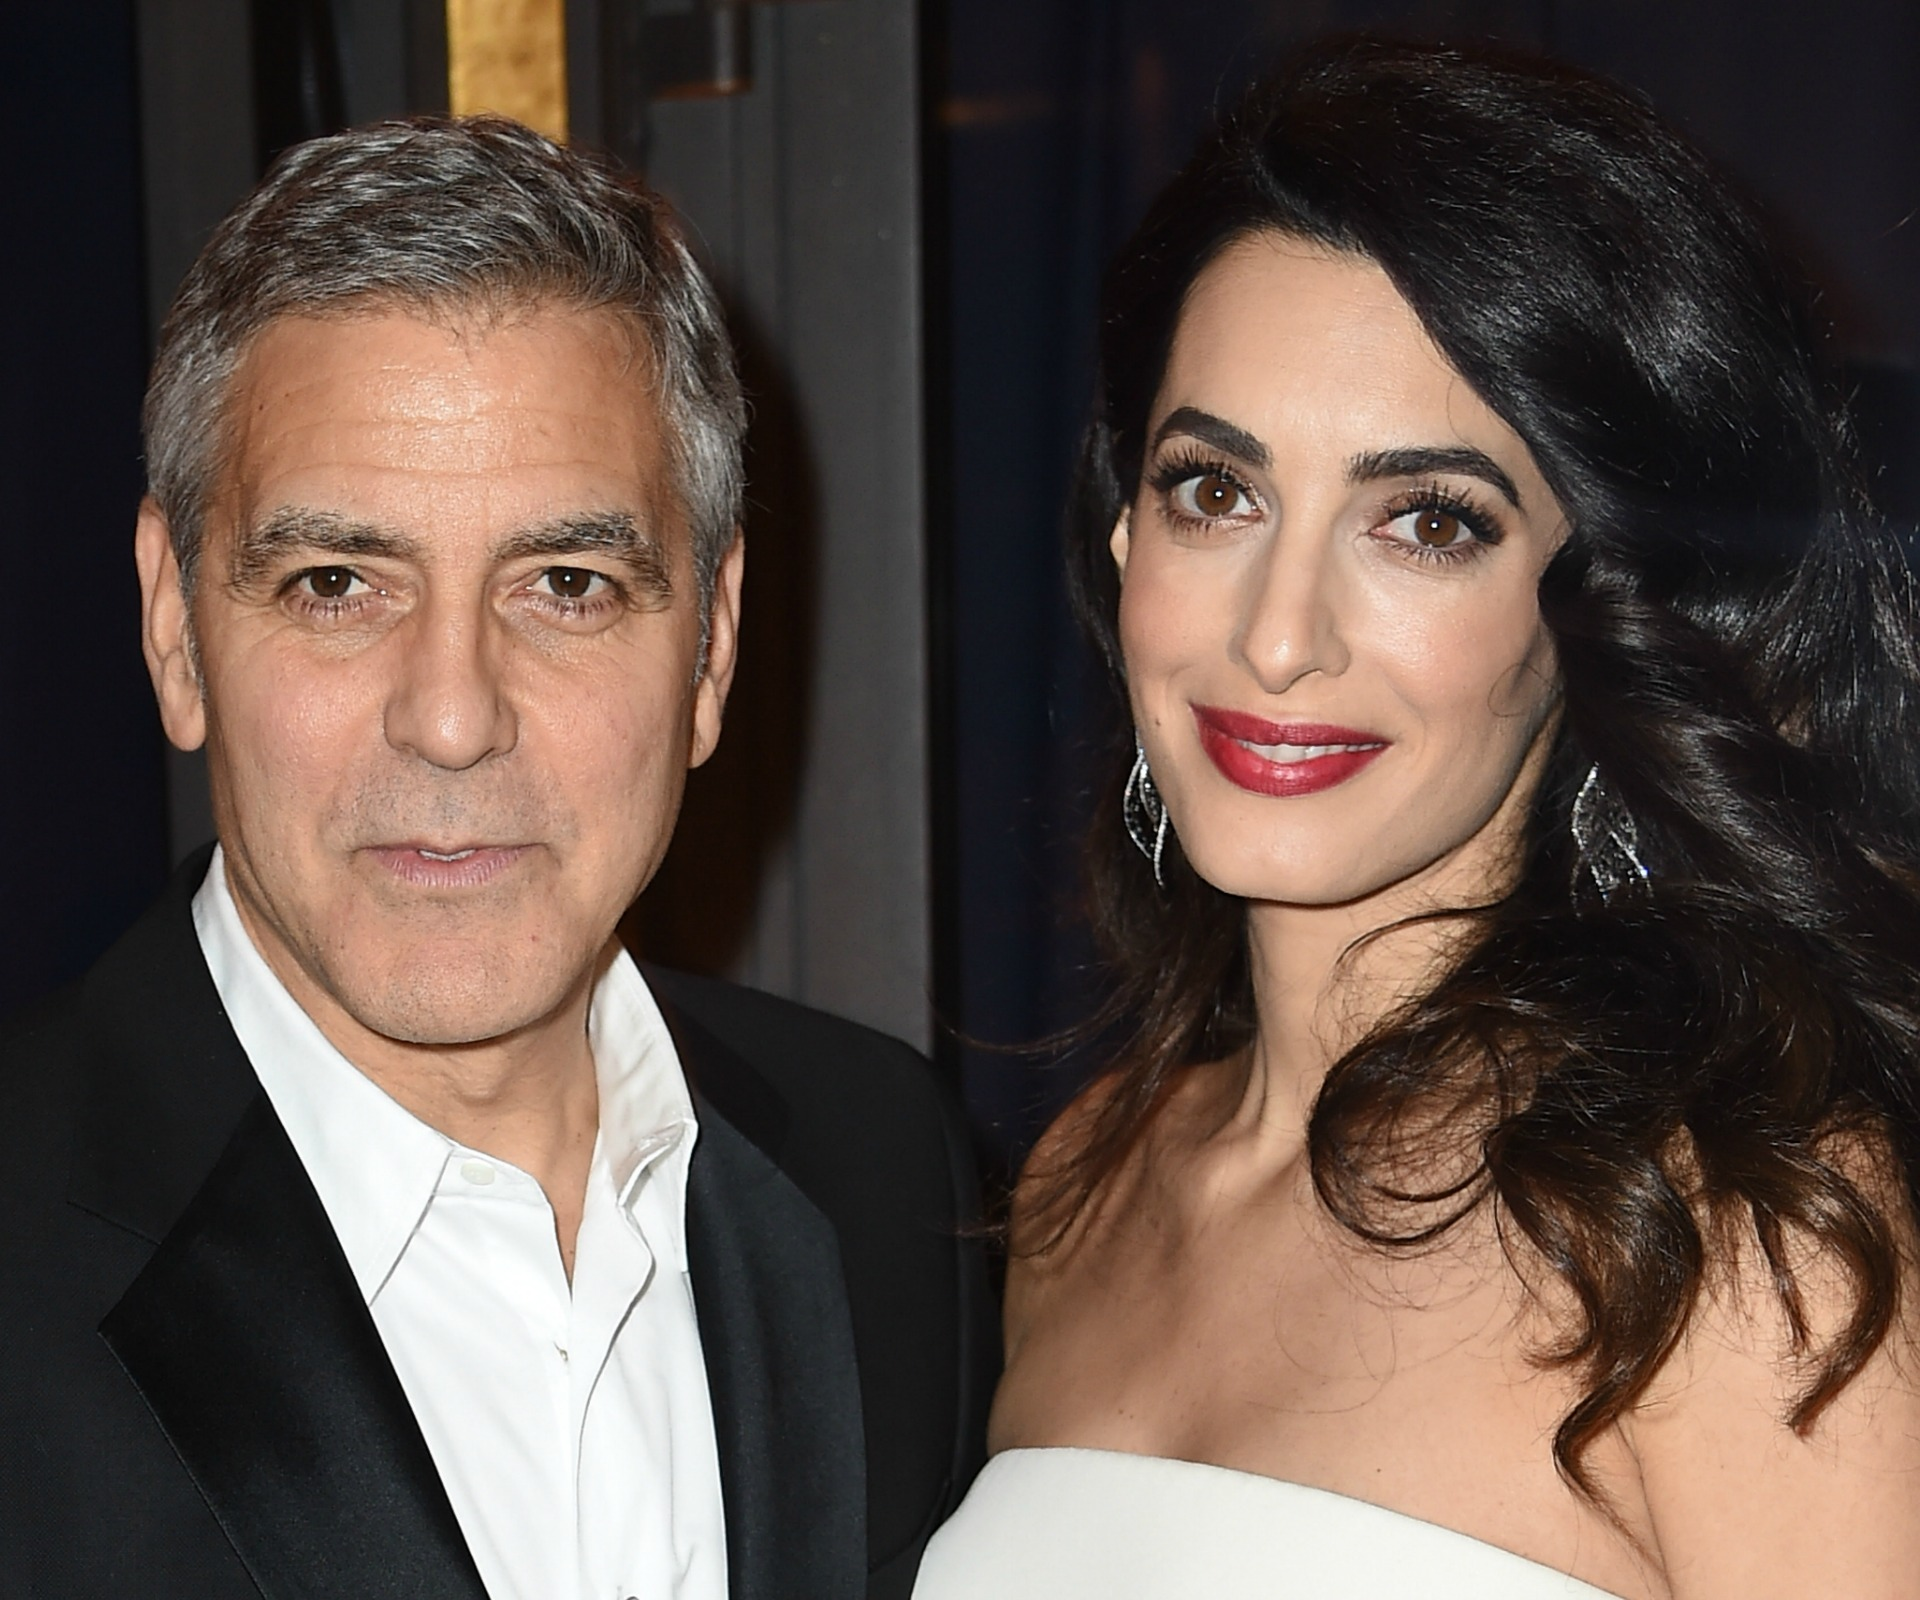 United States actor Clooney raises $2.25mn for Syrian Refugees